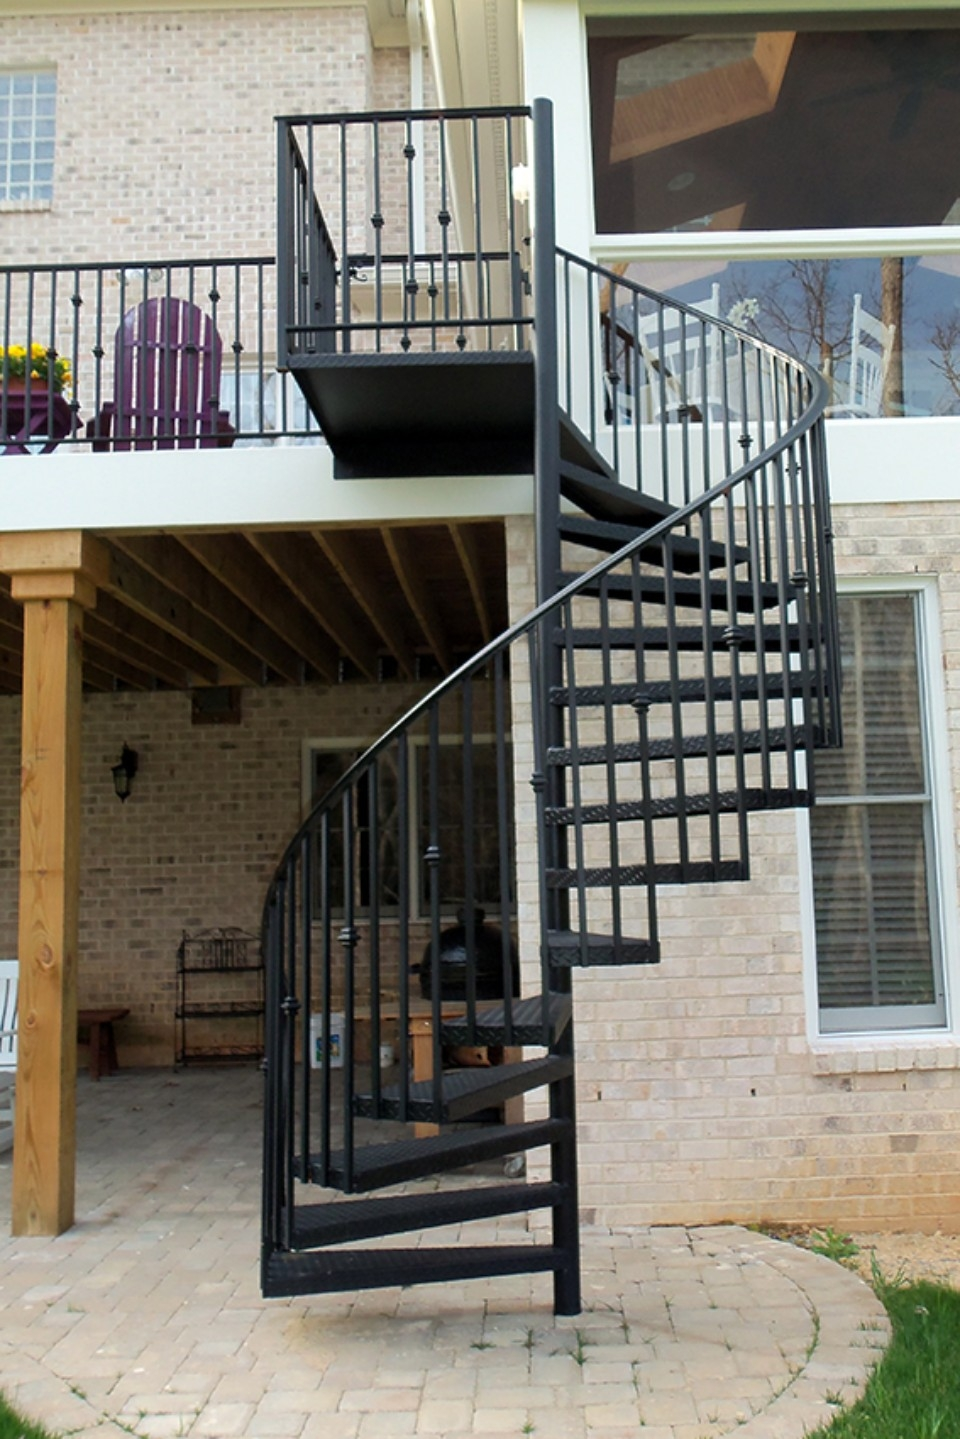 Wrought Iron Staircase Raleigh Nc Cast Iron Elegance | Wrought Iron Spiral Staircase | Old | Plant Stand | Stair Case | Transitional | Narrow